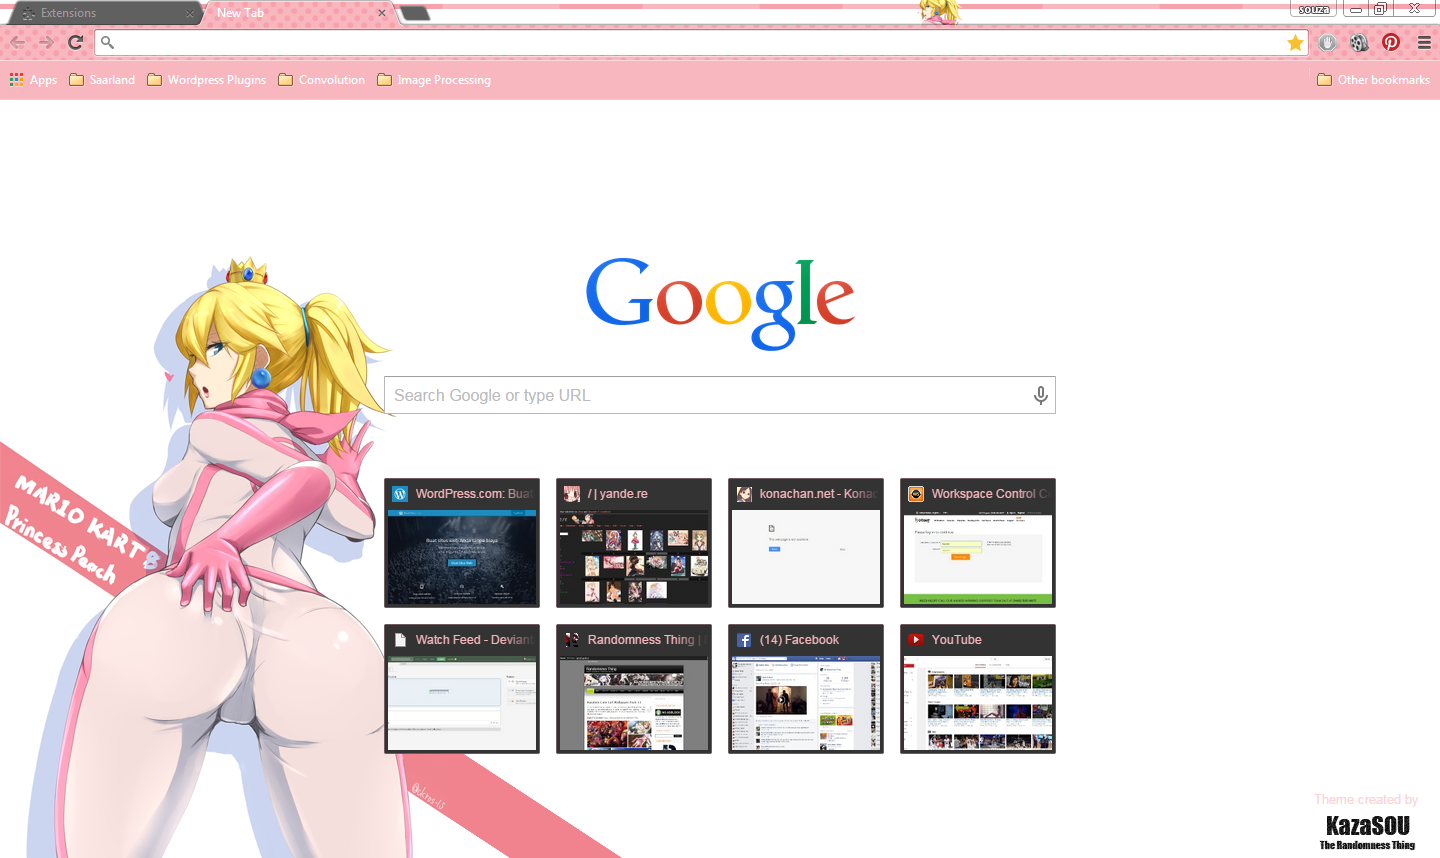 Google themes today - A Little Bit Of An Nsfw Google Chrome Theme Here Today Depicting Princess Peach From The